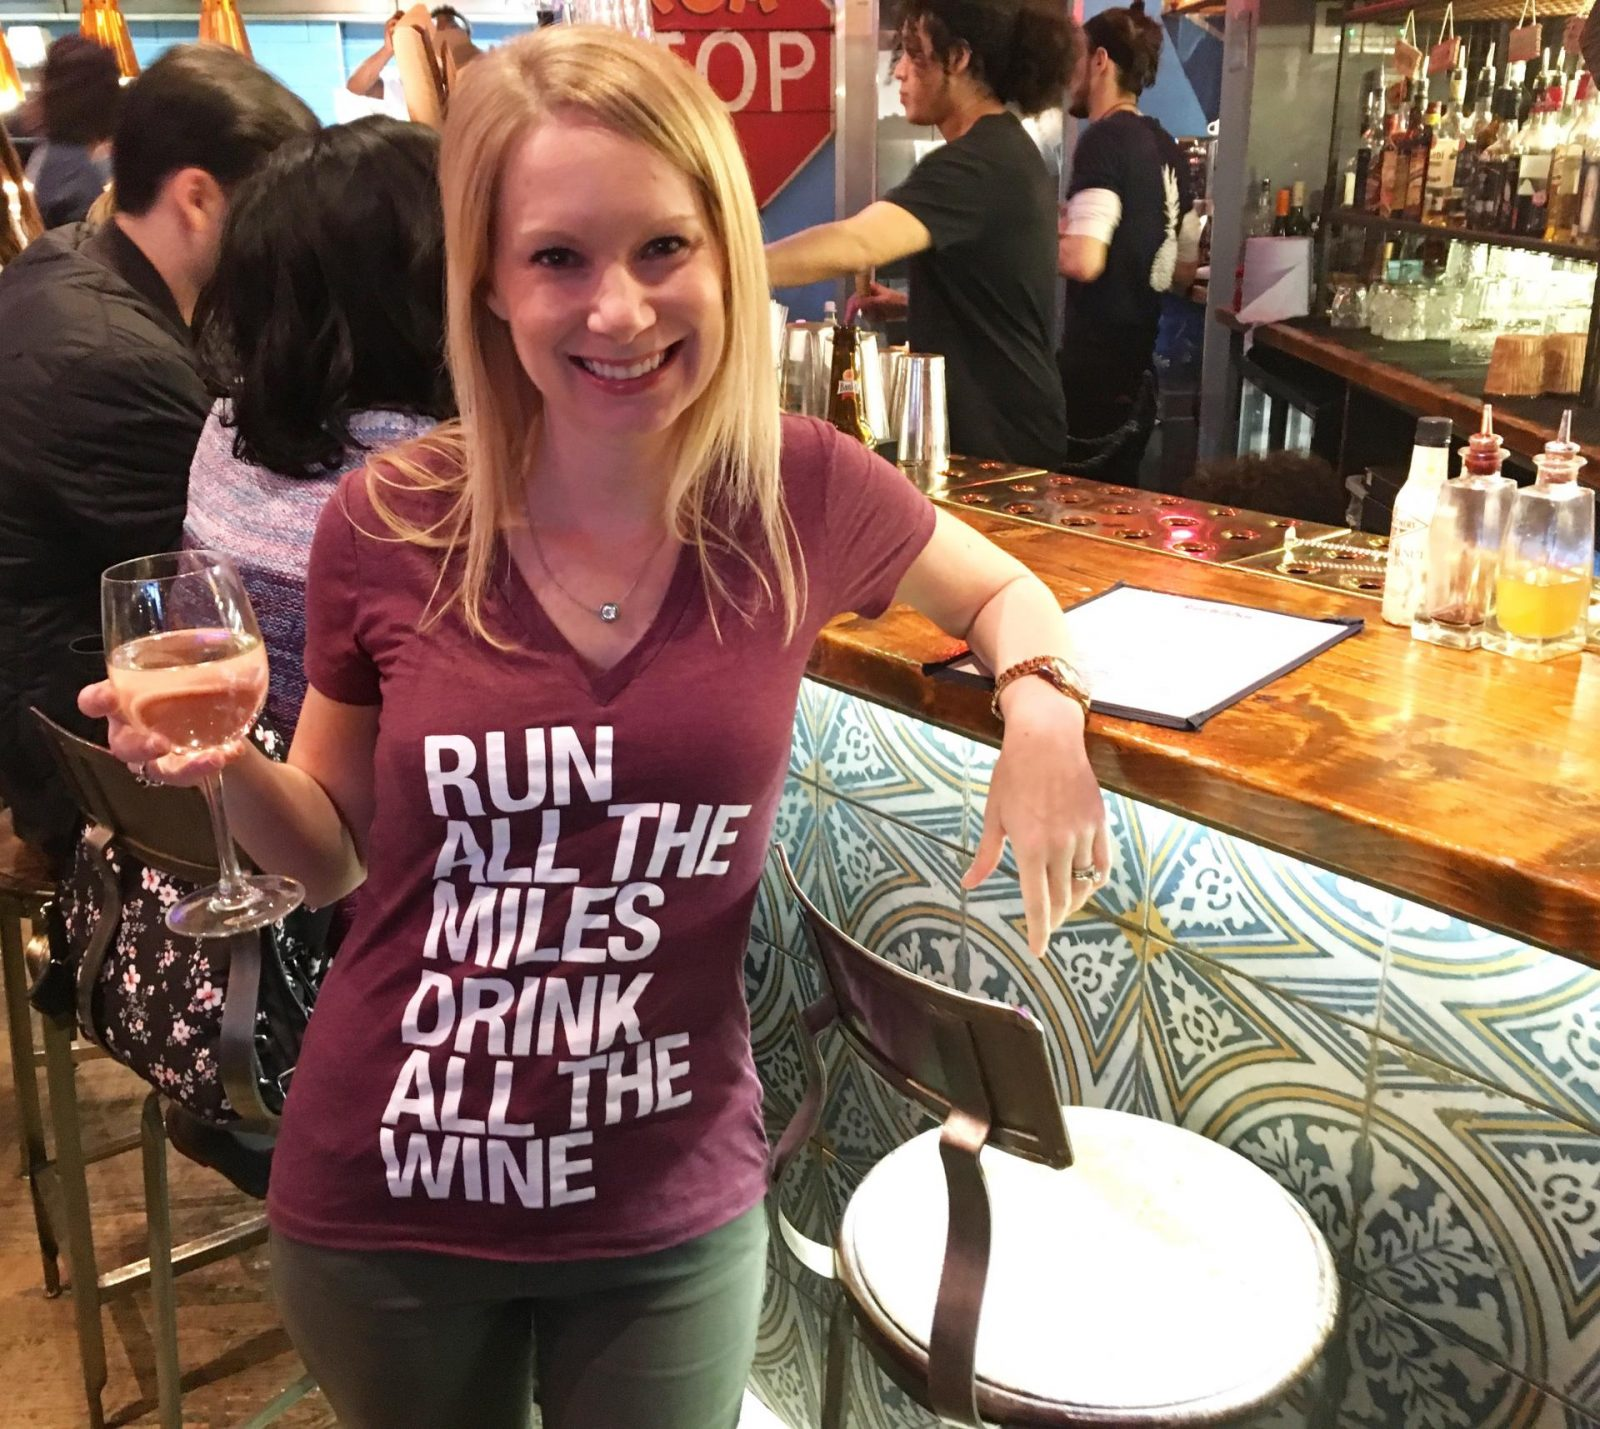 her awesome original tshirts sweaters and running inspired accessories are the absolute perfect gift for runners with their cheeky running themed designs